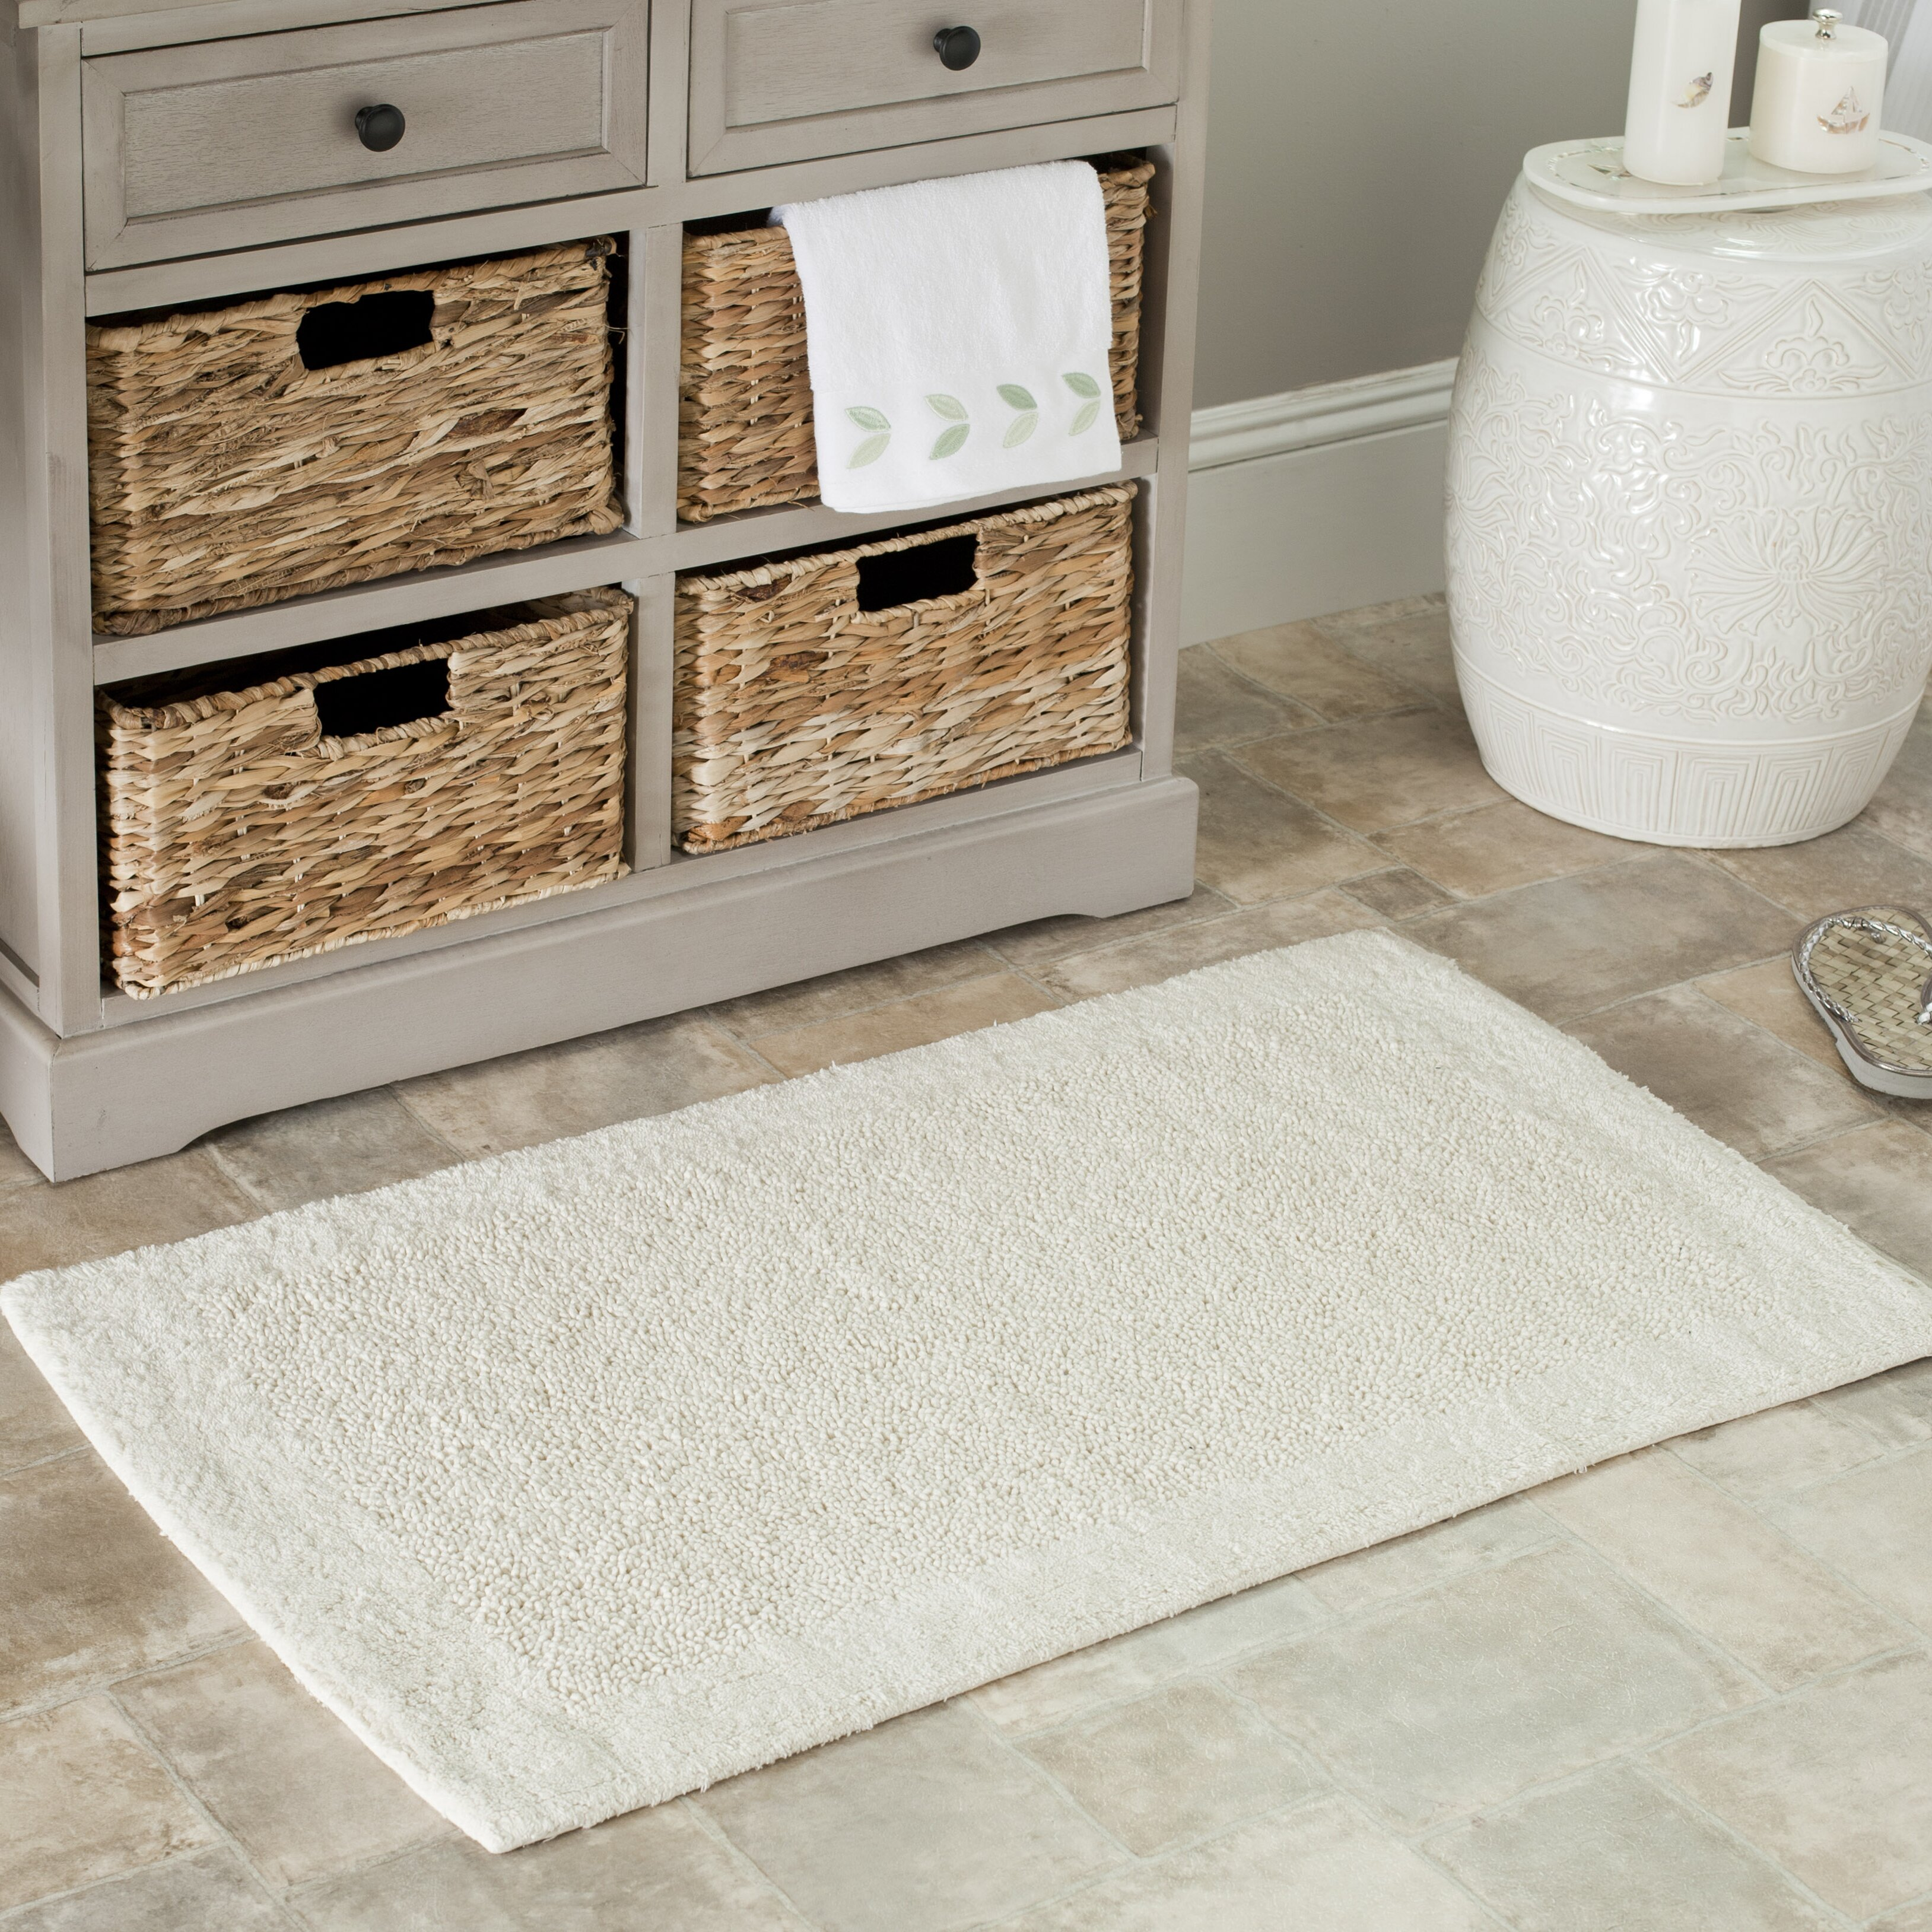 Safavieh plush master bath rug ii reviews wayfair for Master bathroom rugs